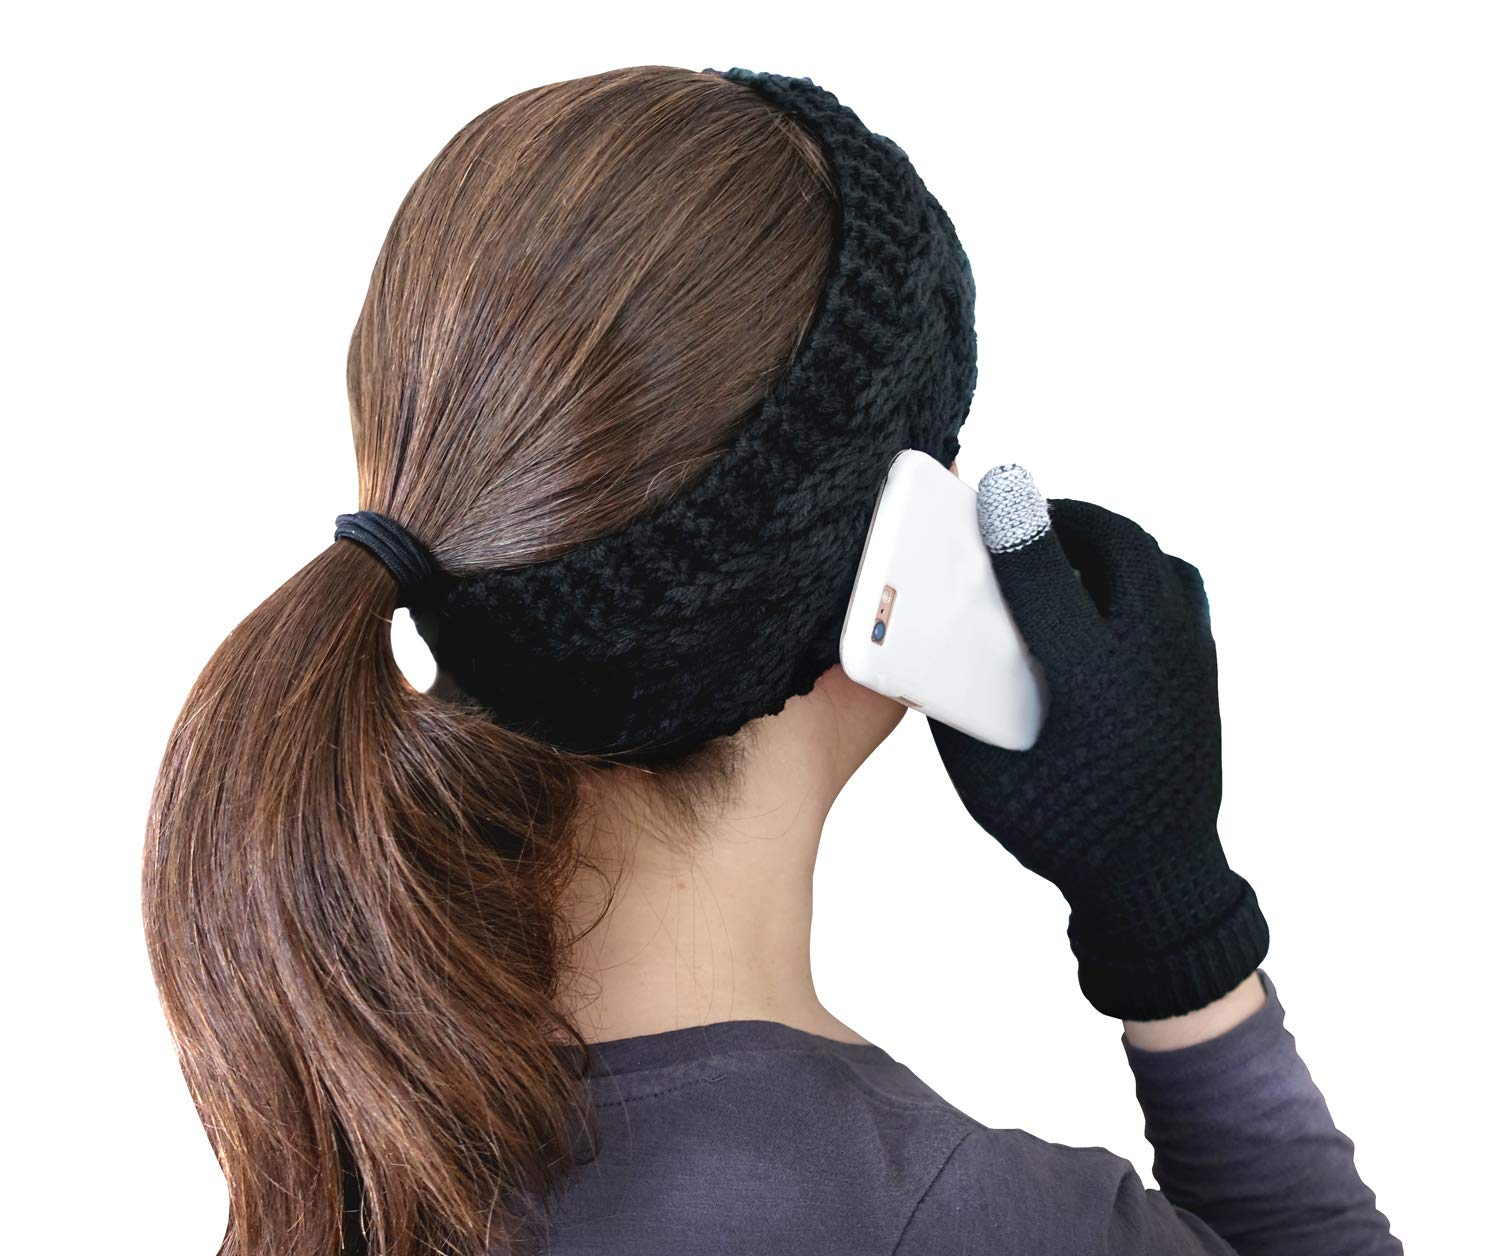 PrimaLuce Woven Knit Headband and Touch Screen Gloves | Ear Warmers | Smartphone Gloves